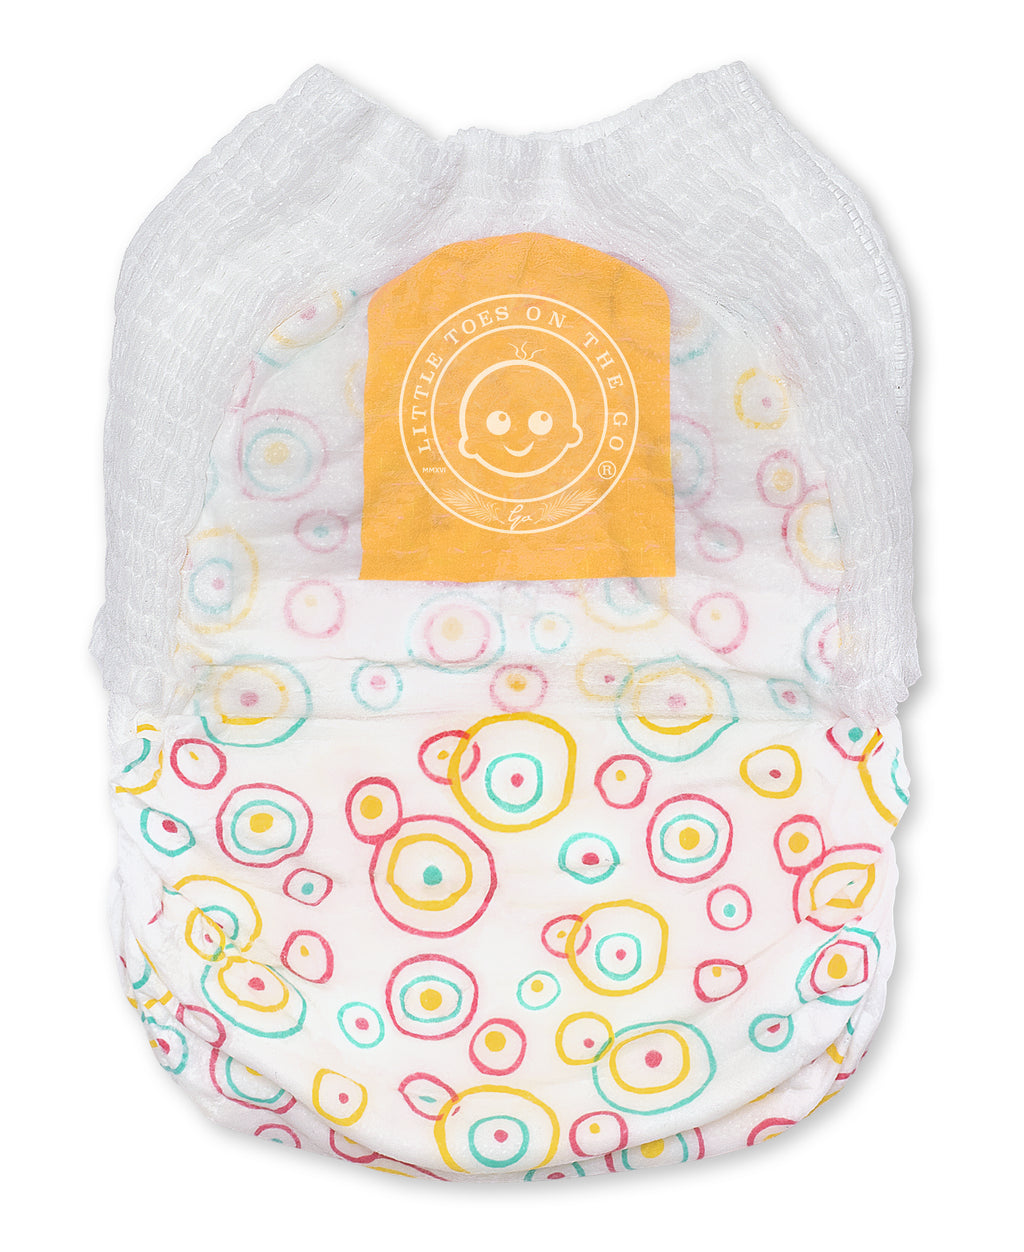 Swimmy Diaper Change Set - Medium (19-30lbs / 9-14 Kg)